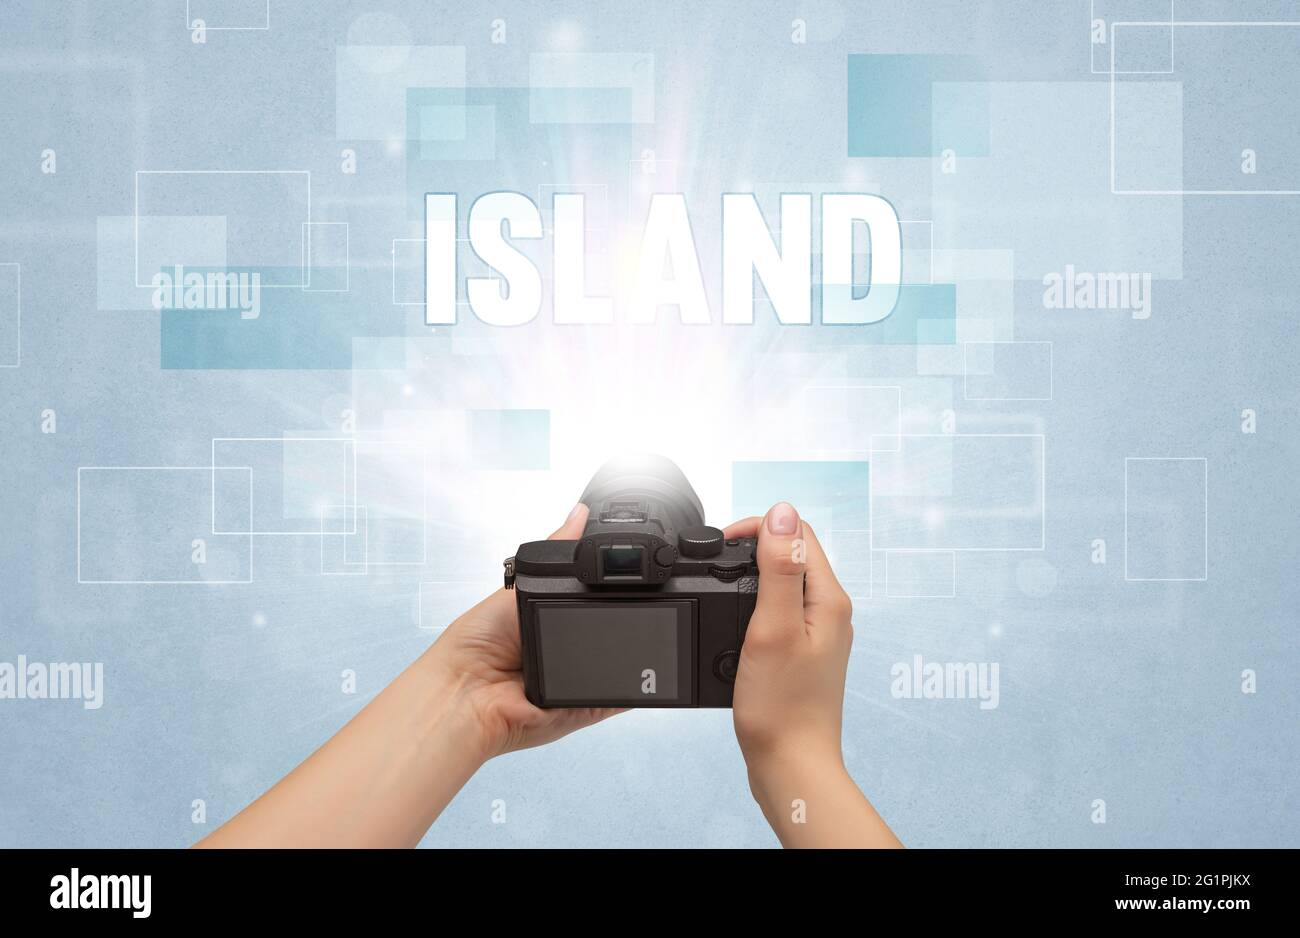 hand holding digital camera, traveling concept Stock Photo